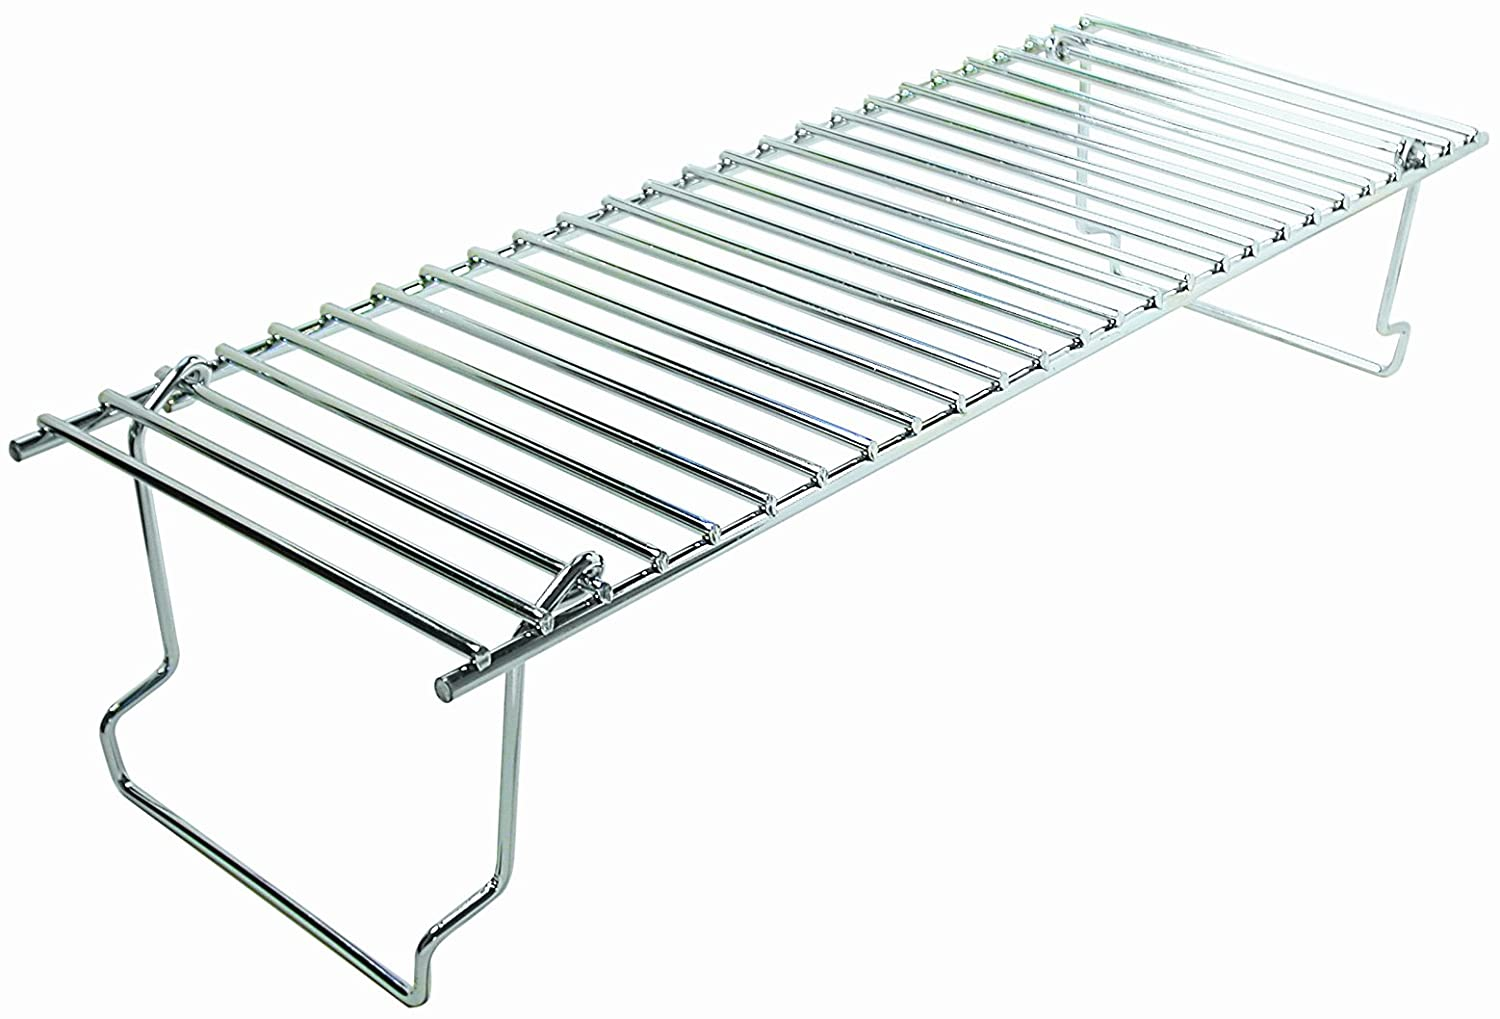 Grill Pro 14625 Universal Chrome Warming Rack GrillPro